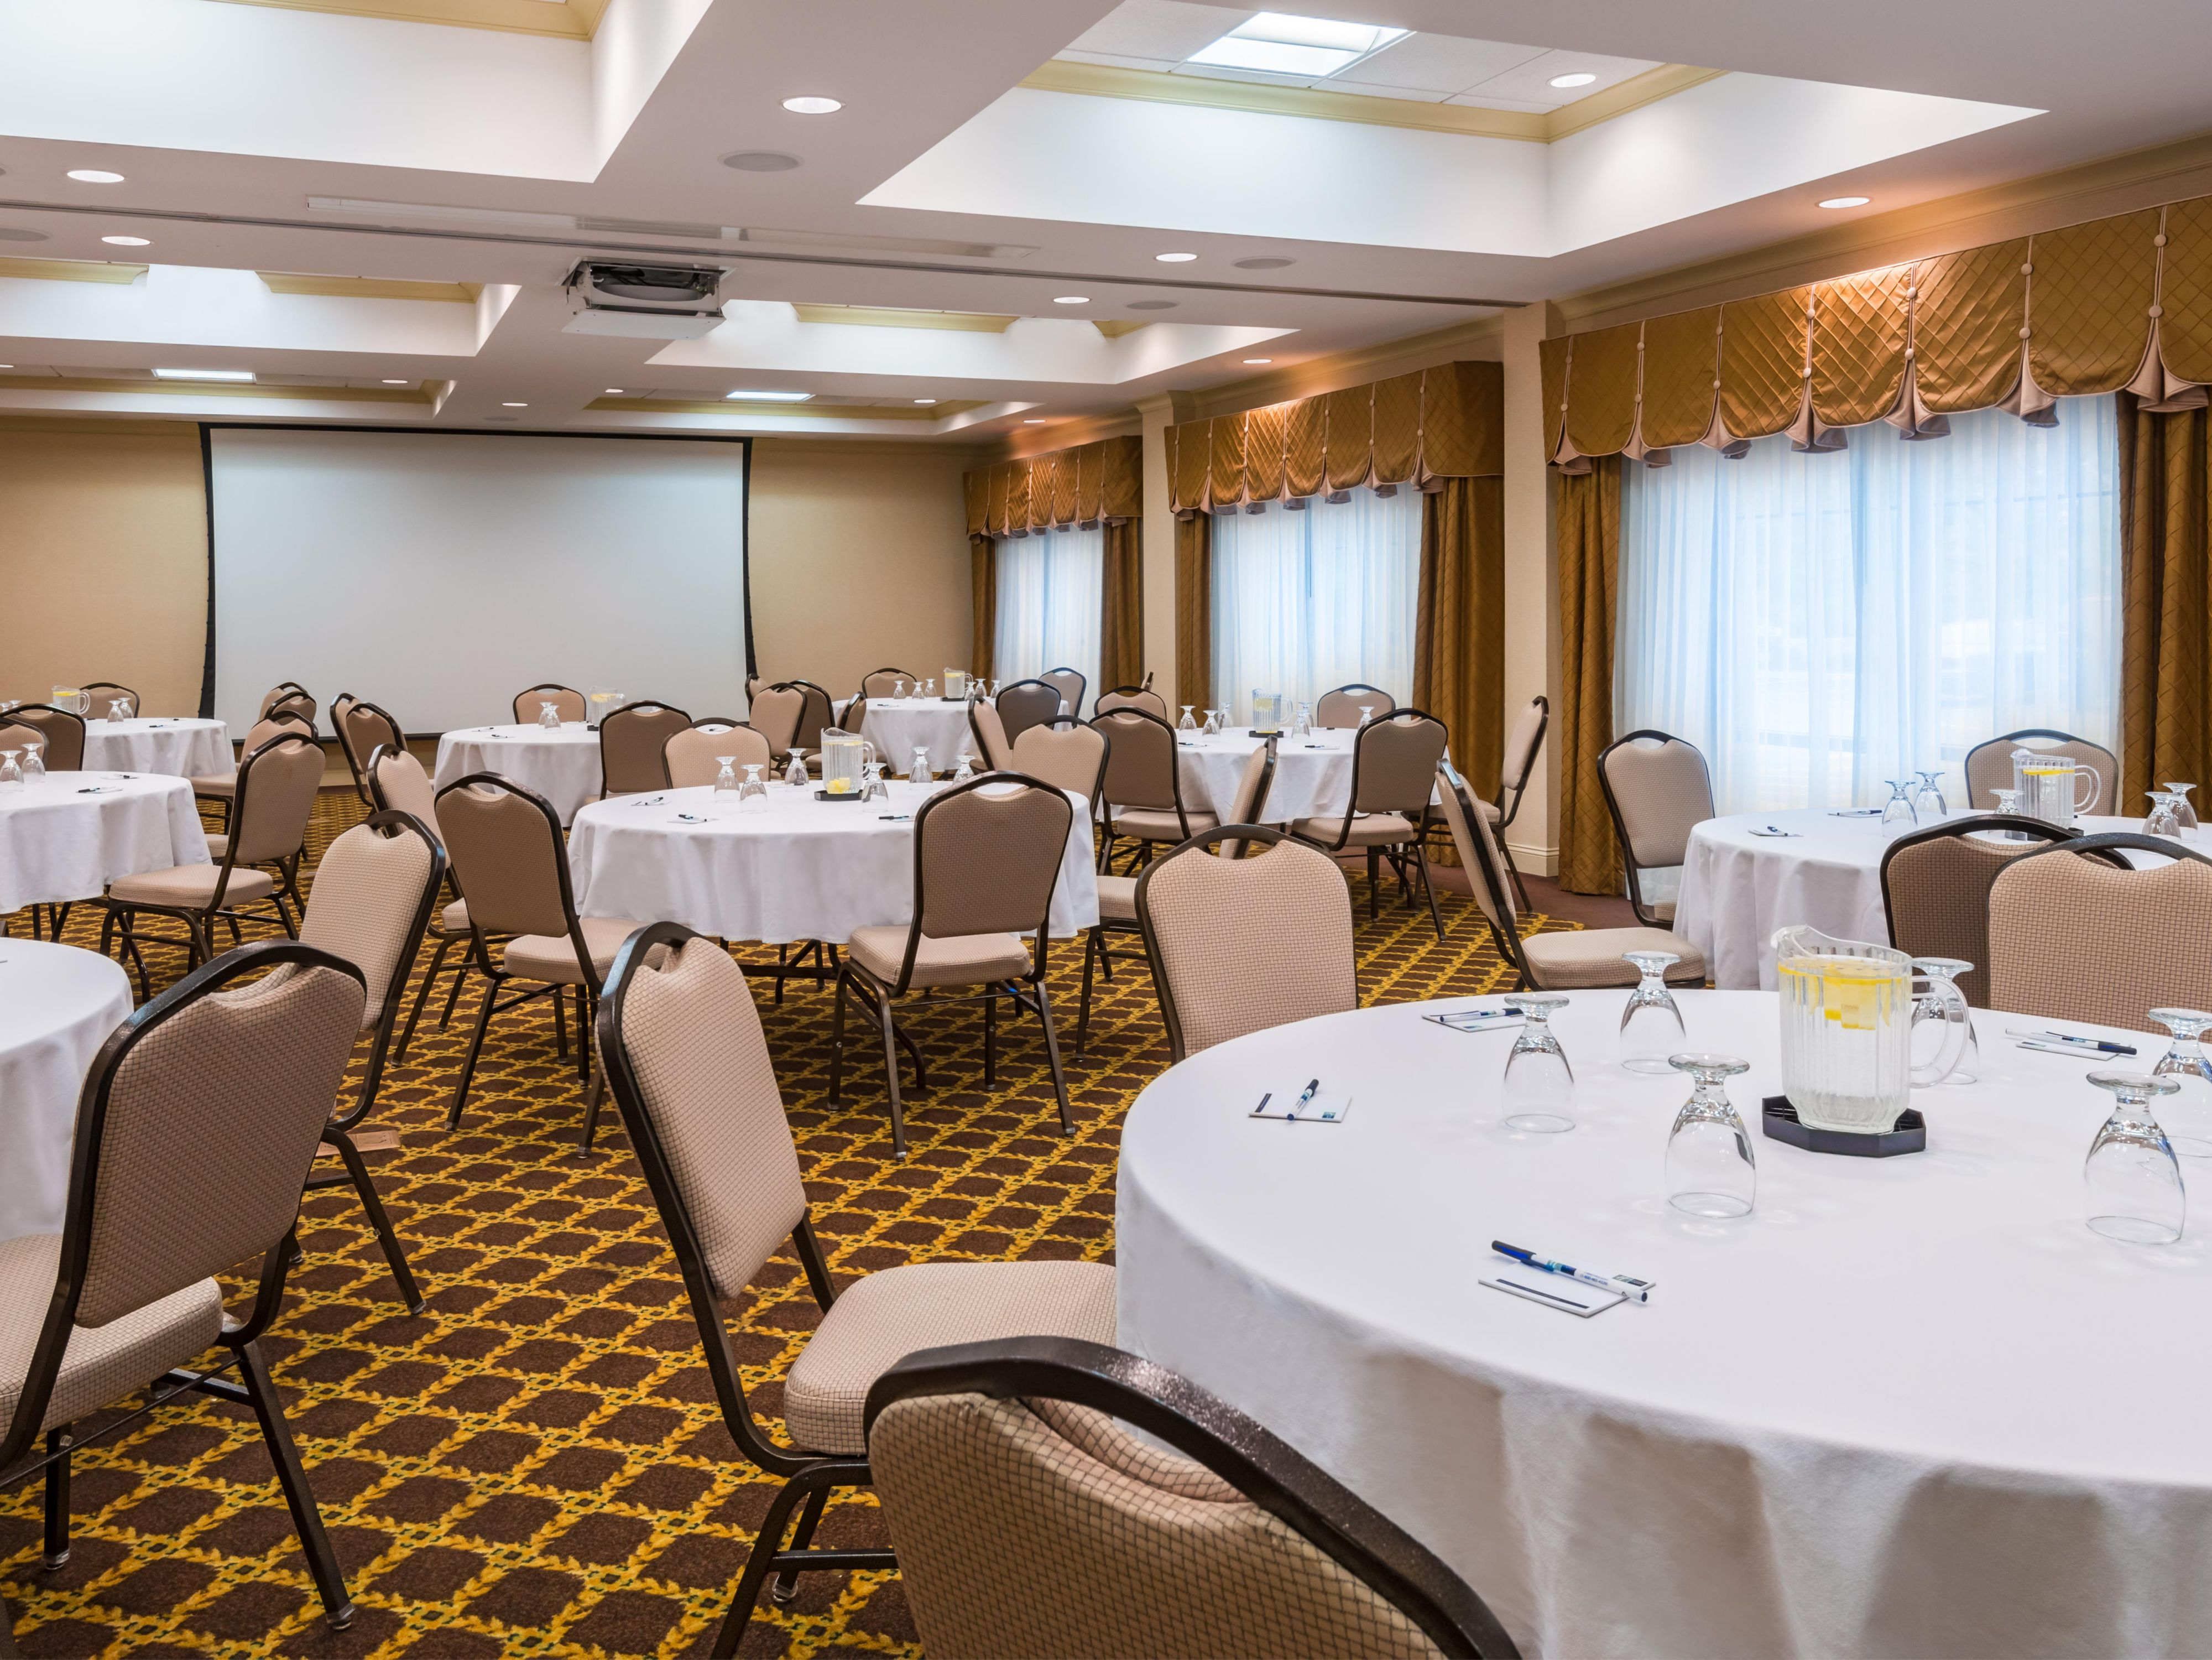 Book your event in the ball room